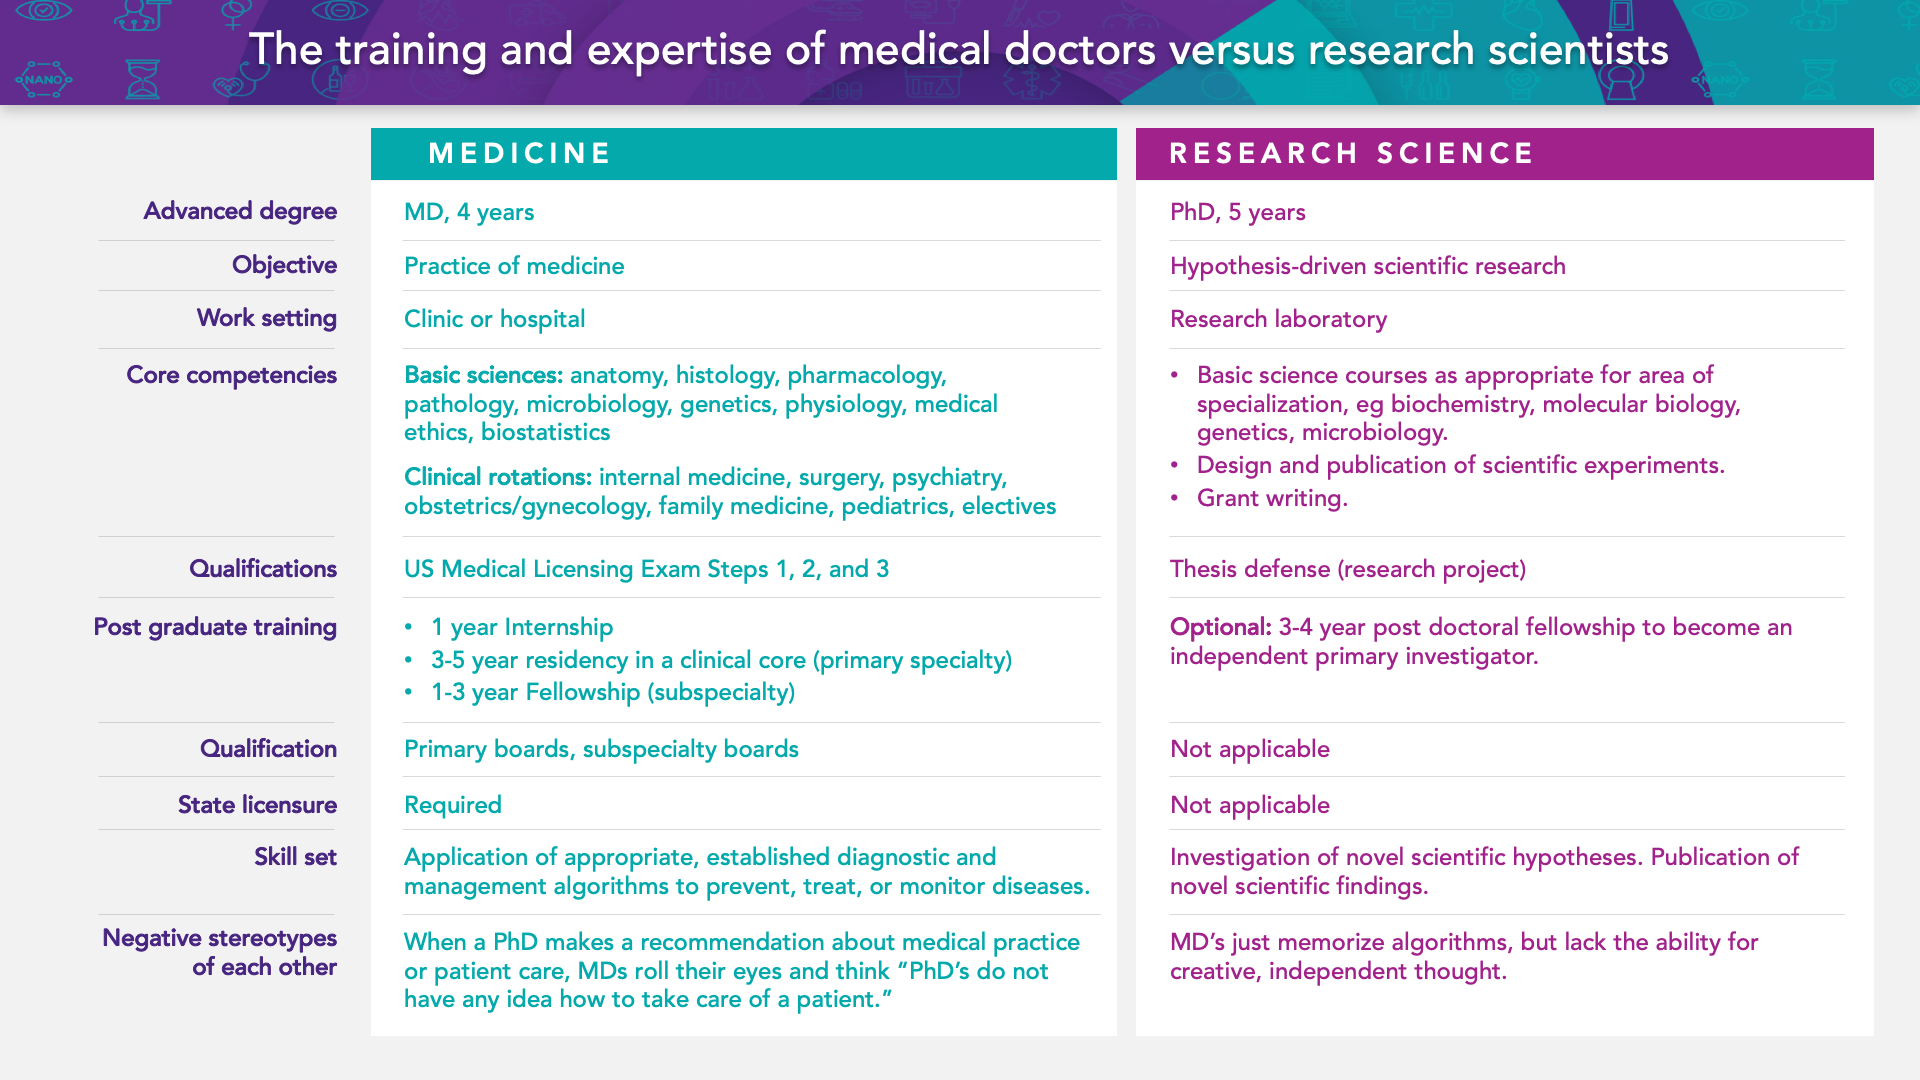 Table 1: The training and expertise of medical doctors versus research scientists.